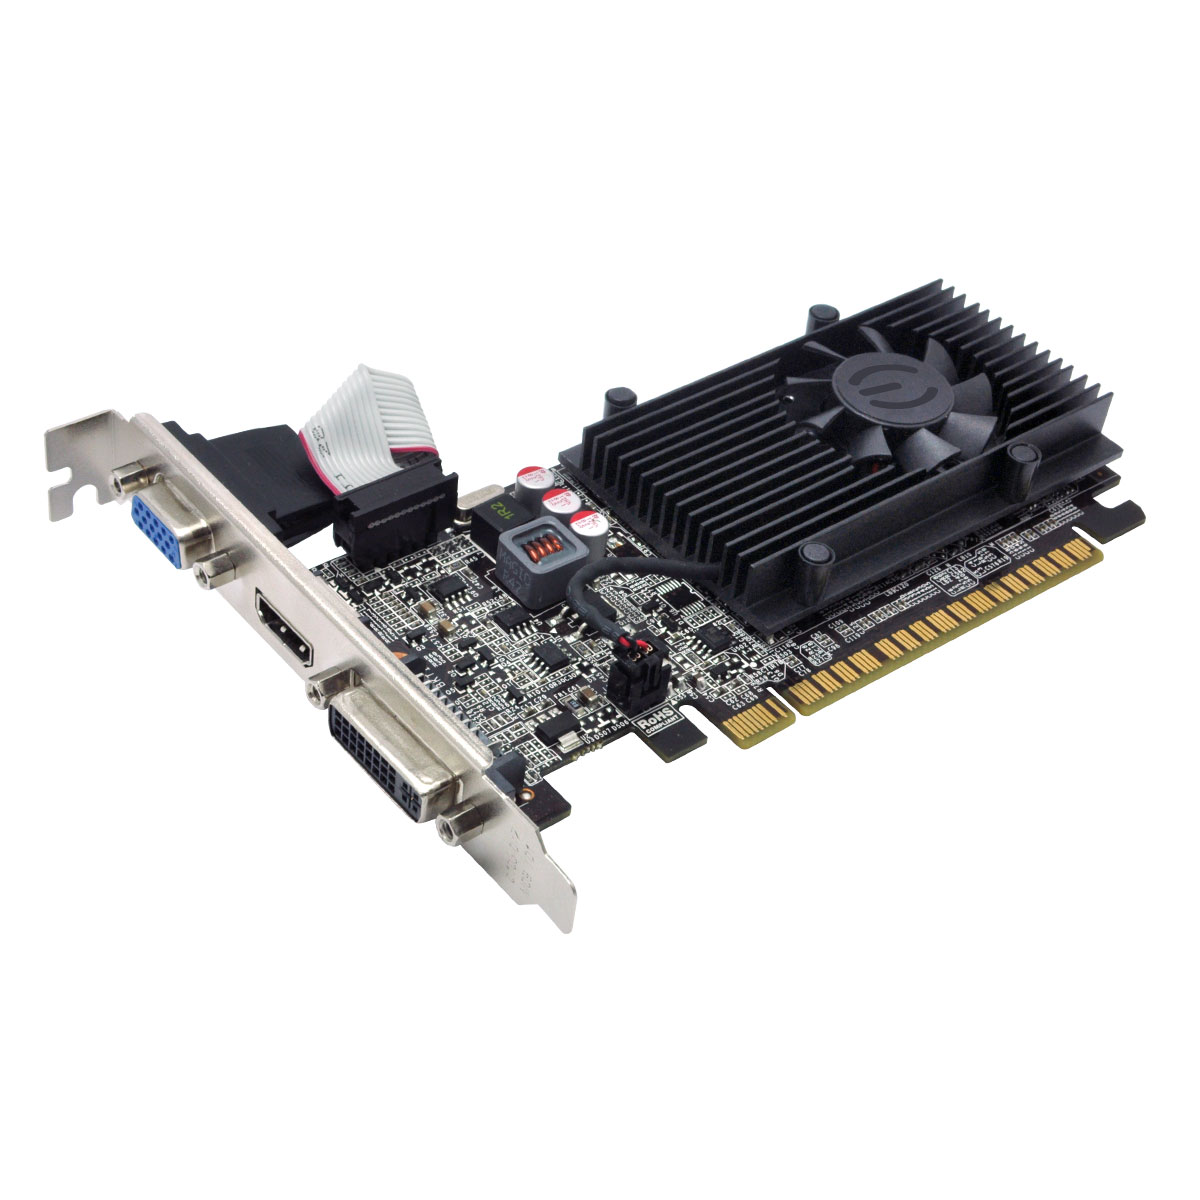 nvidia geforce gt 610 driver